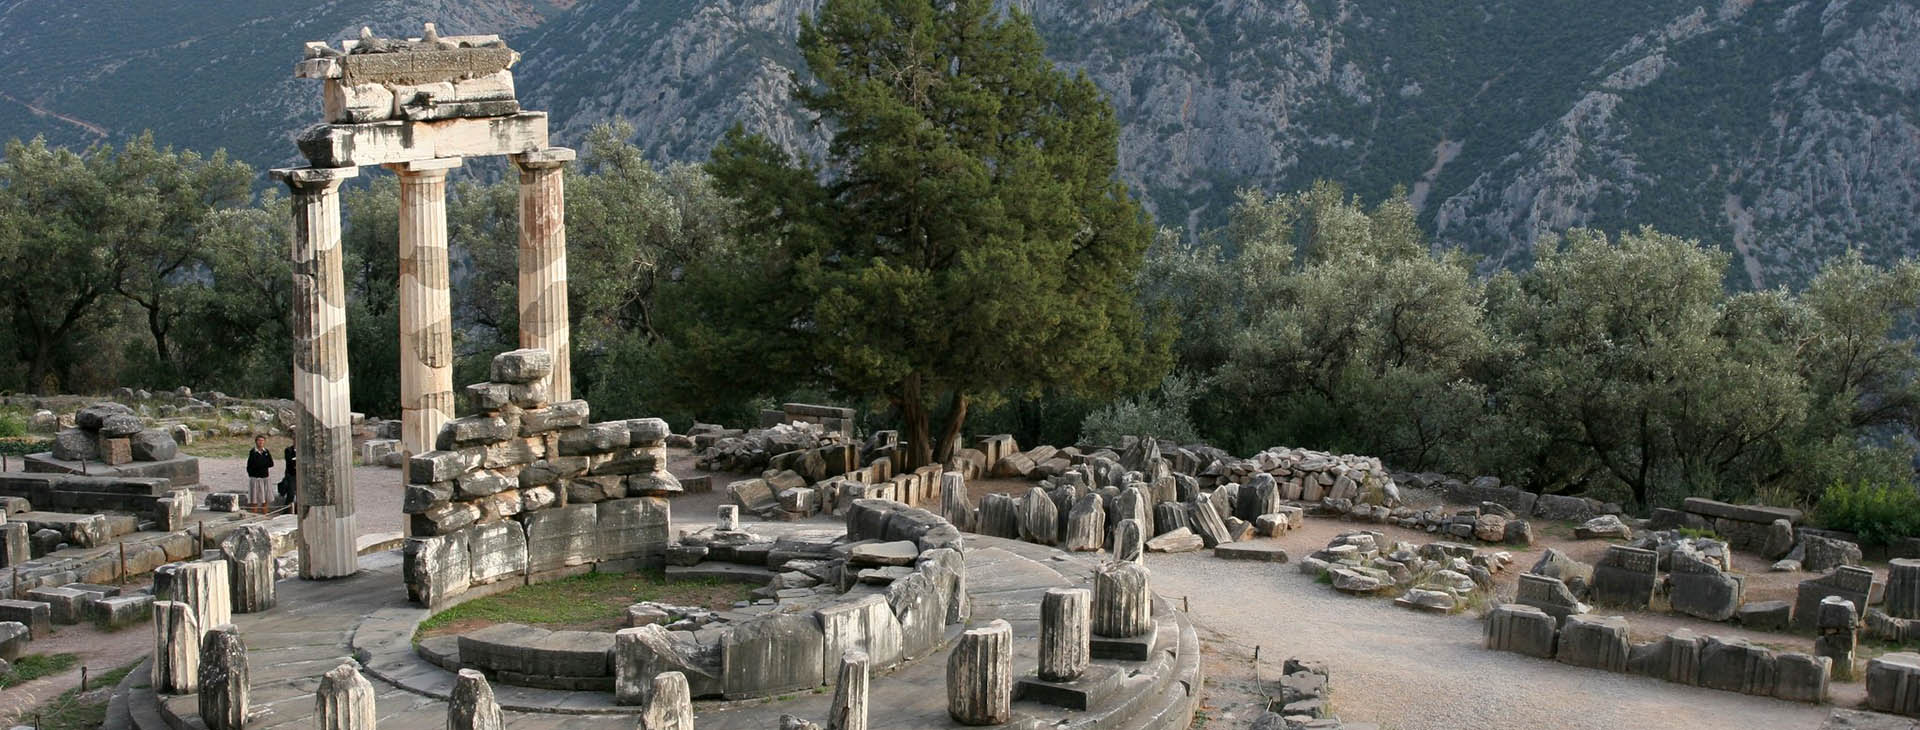 Delphi - Pronaia Sanctuary, Fokis